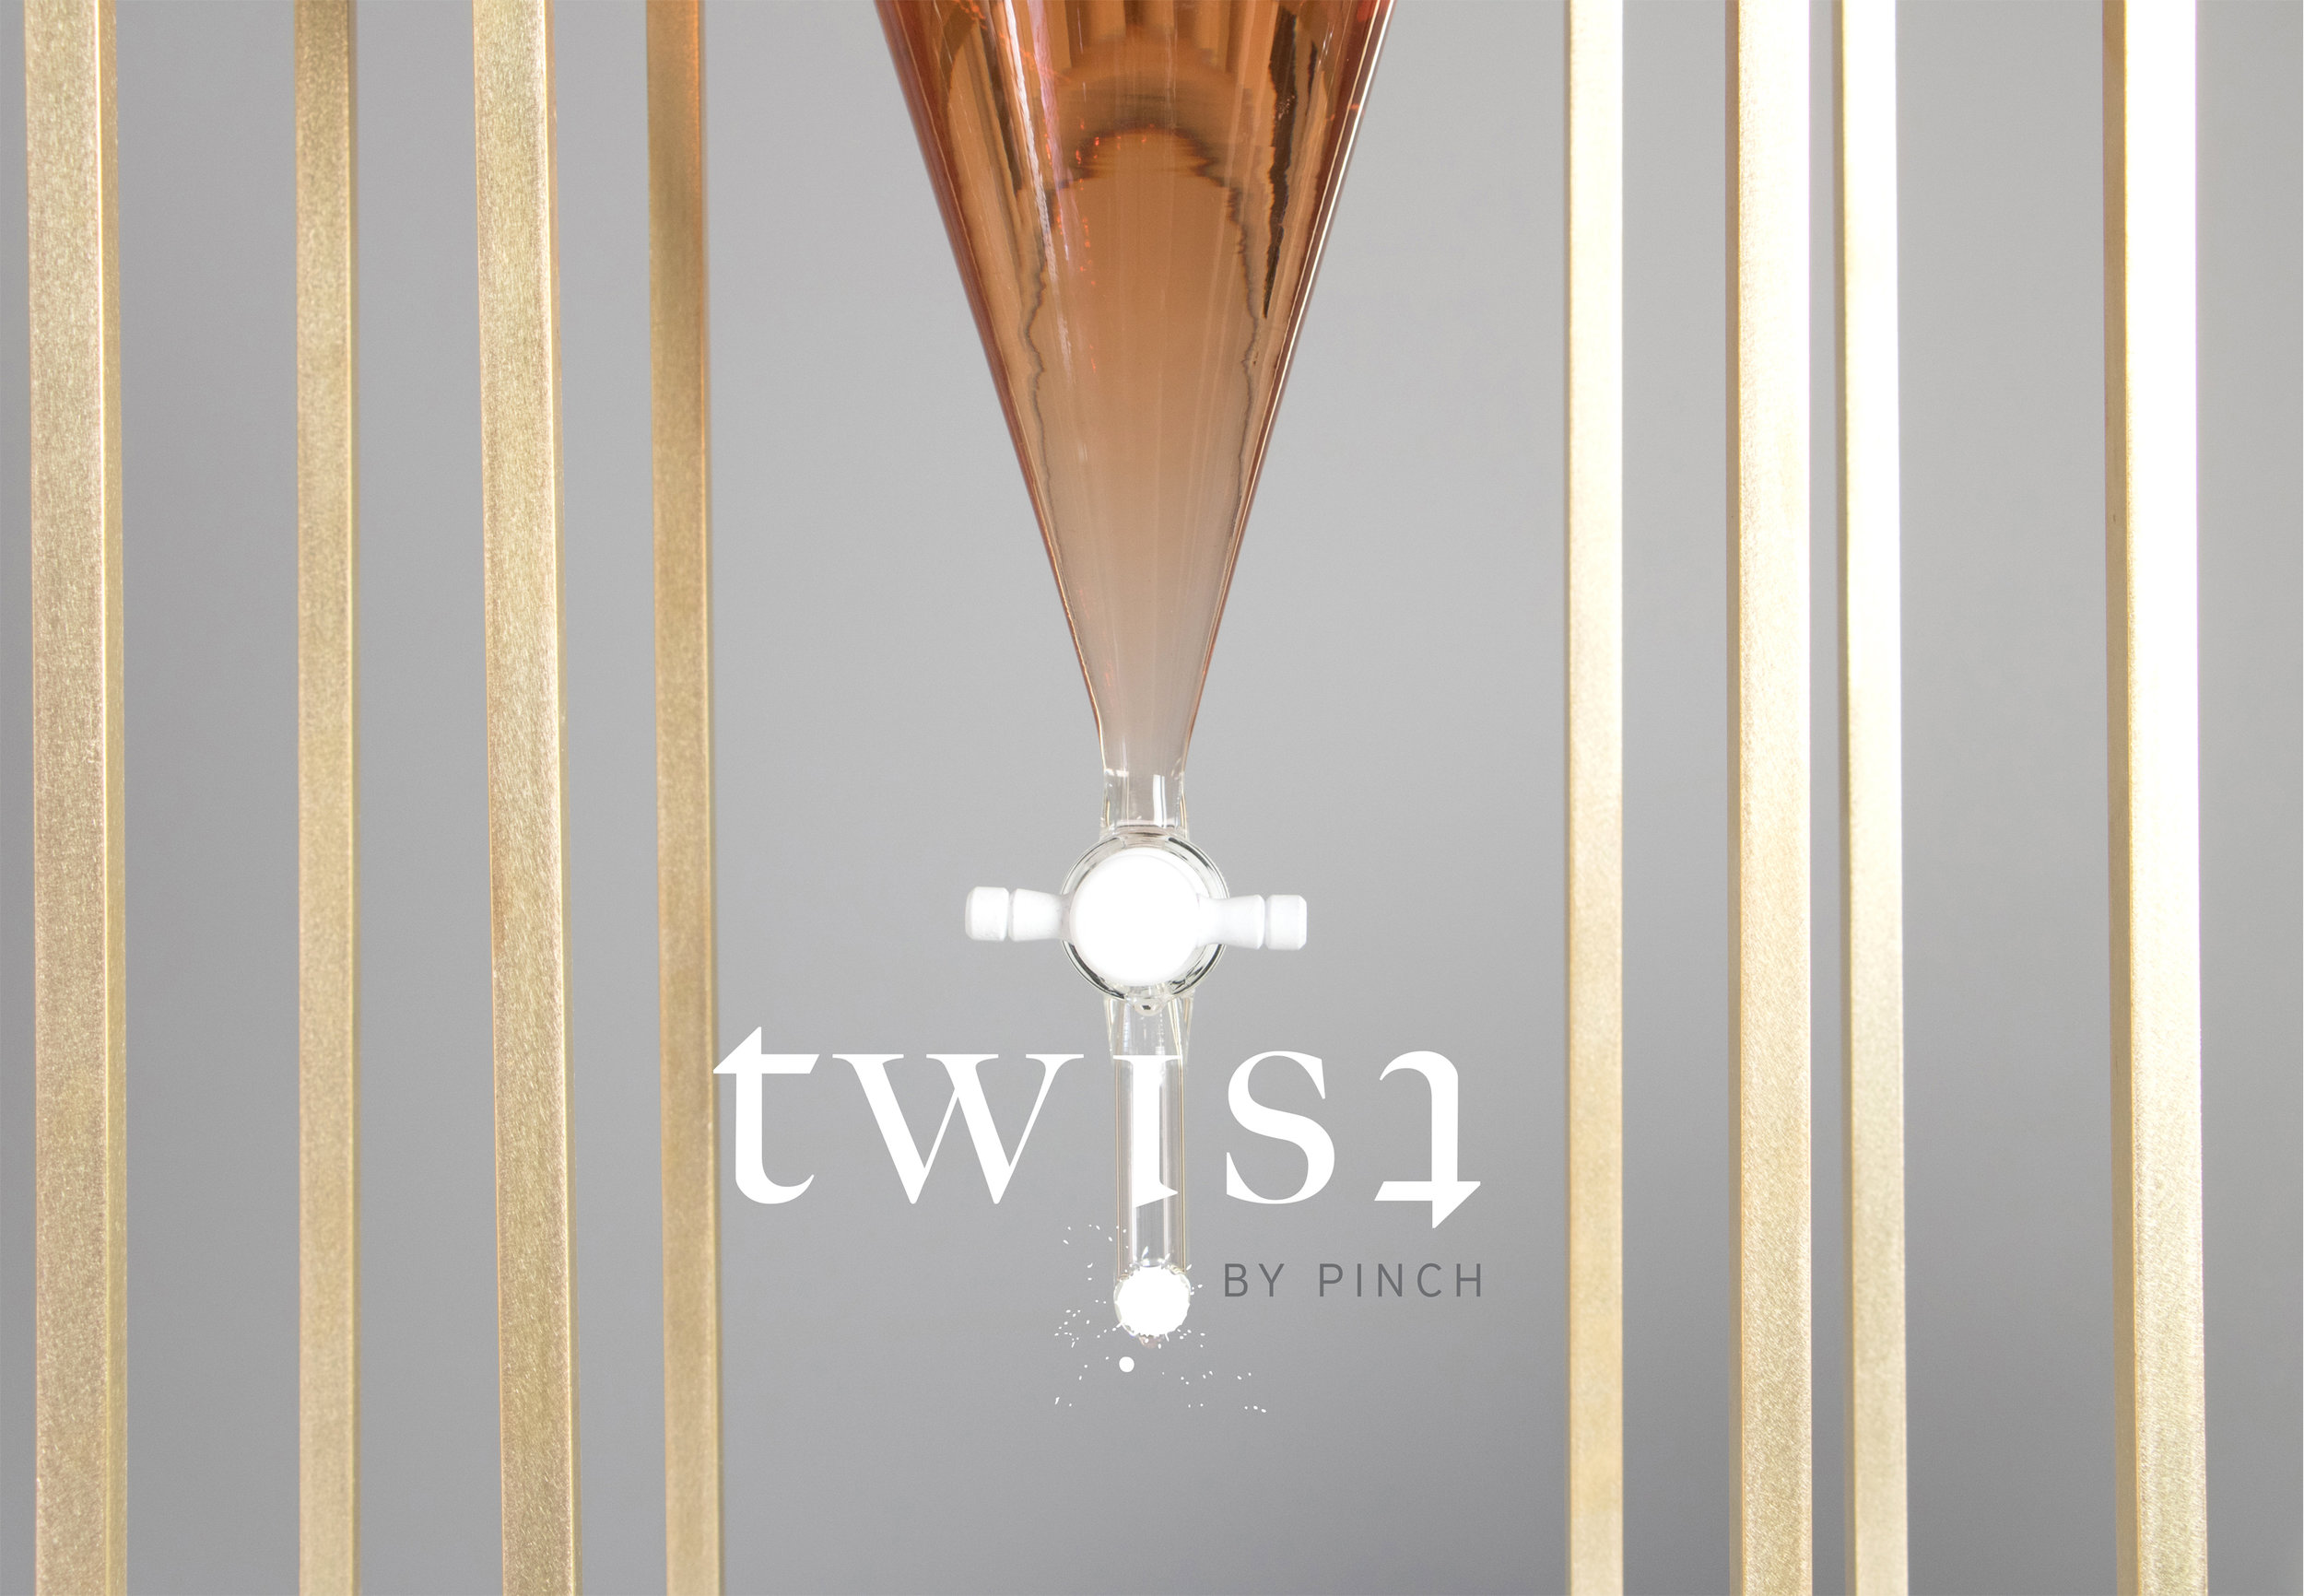 twist website banner.jpg